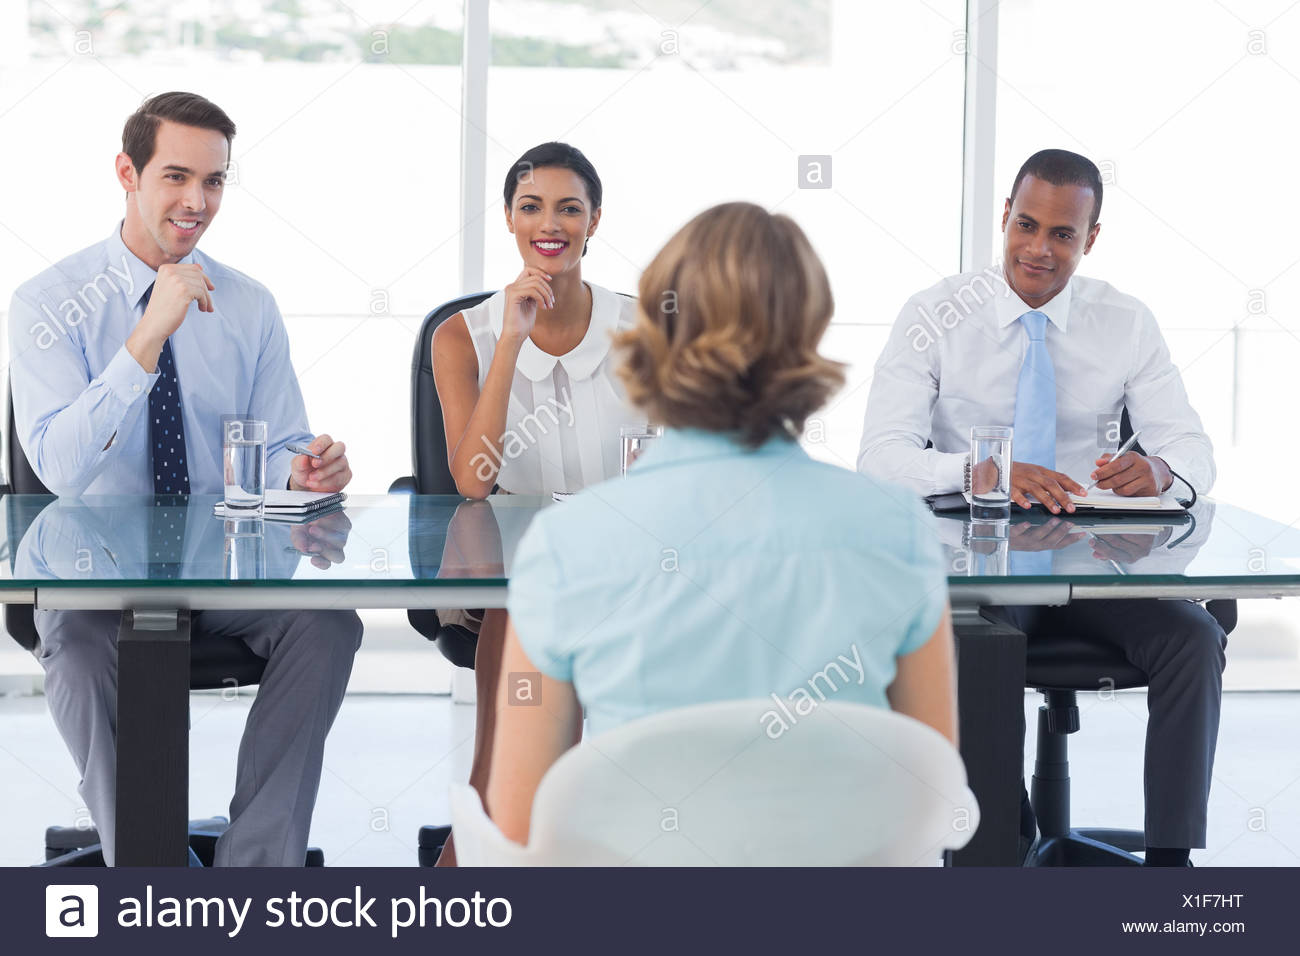 Recruitment consultants smiling in front of a job applicant - Stock Image